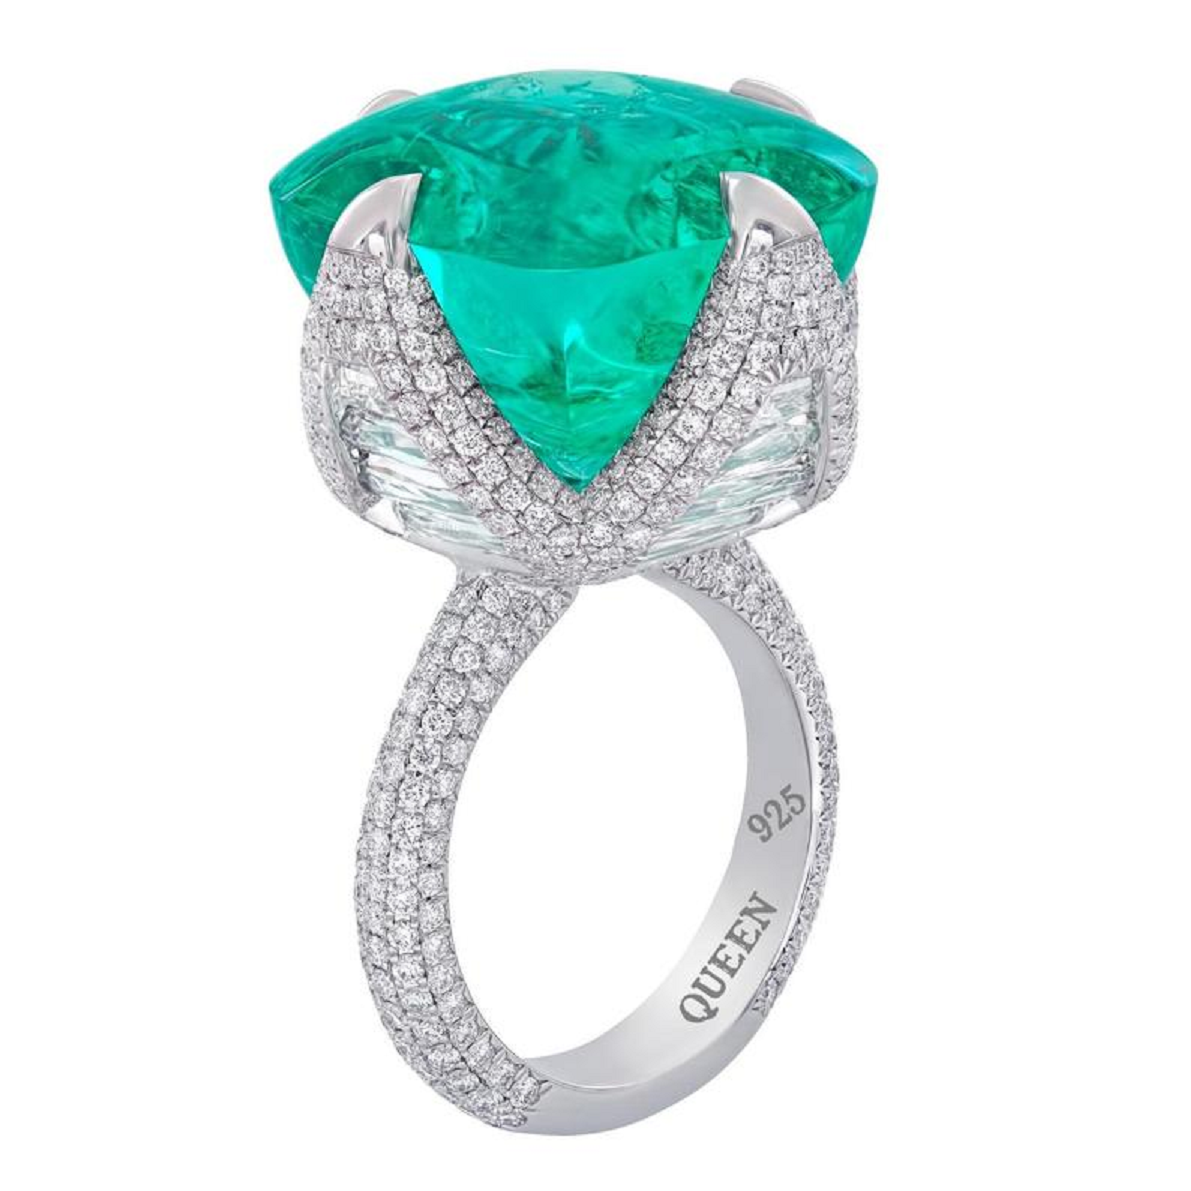 Best massive bling rings 2021 Sparkly Sterling Silver Ring with Luxury Ascher Cut Emerald and Diamonds